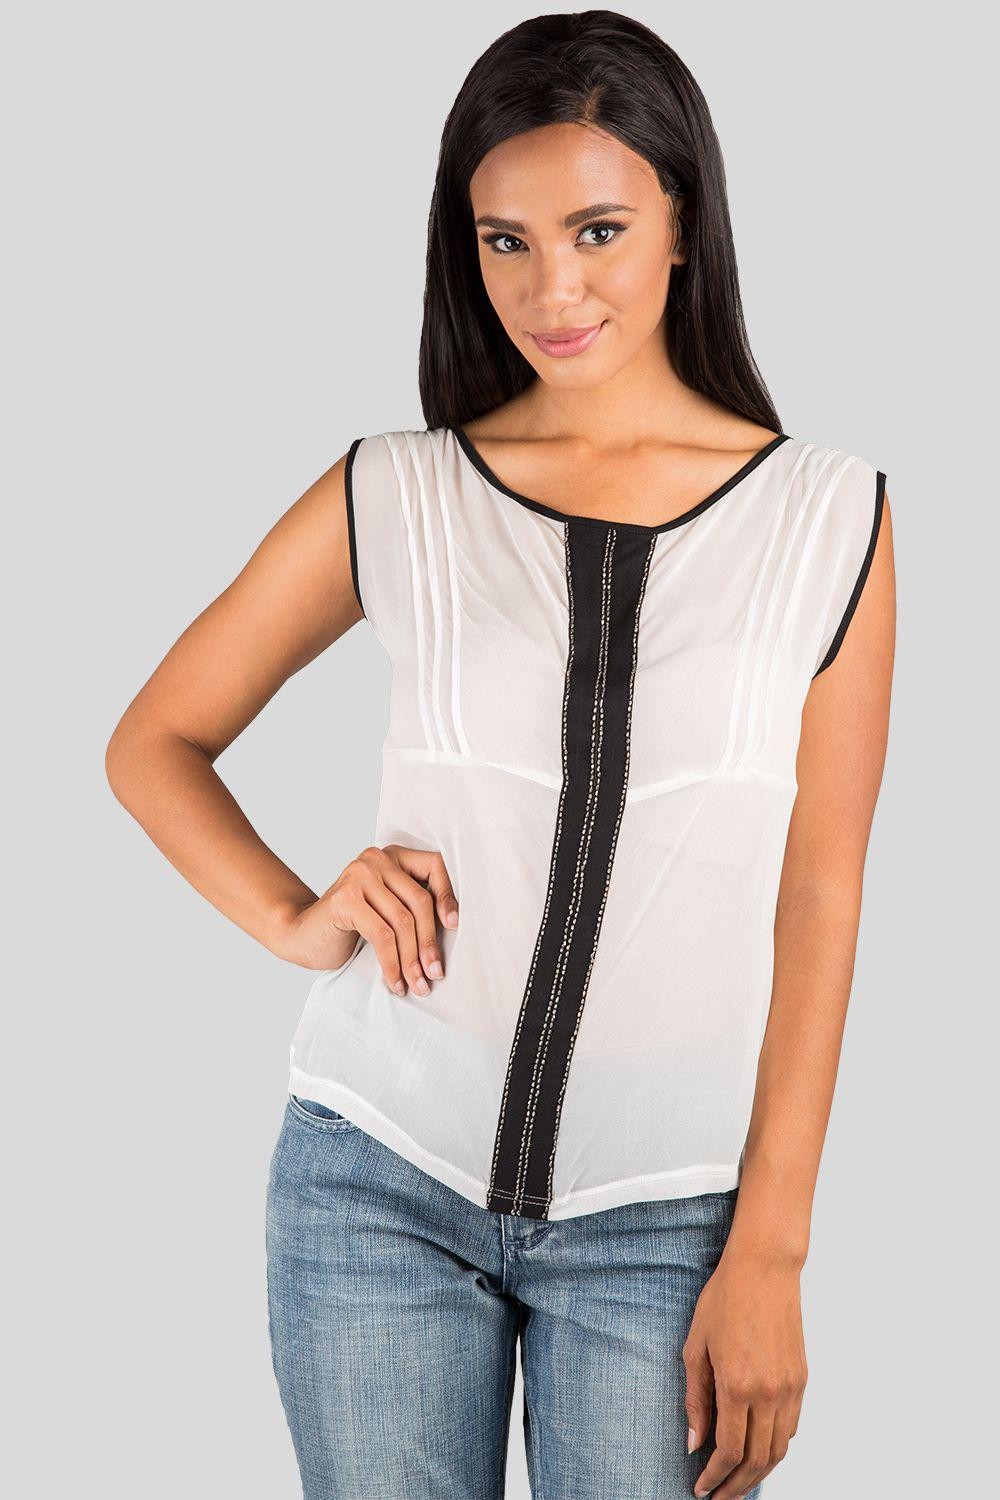 Coco Ivory Black Bead And Pintuck French Top Silk Blouse